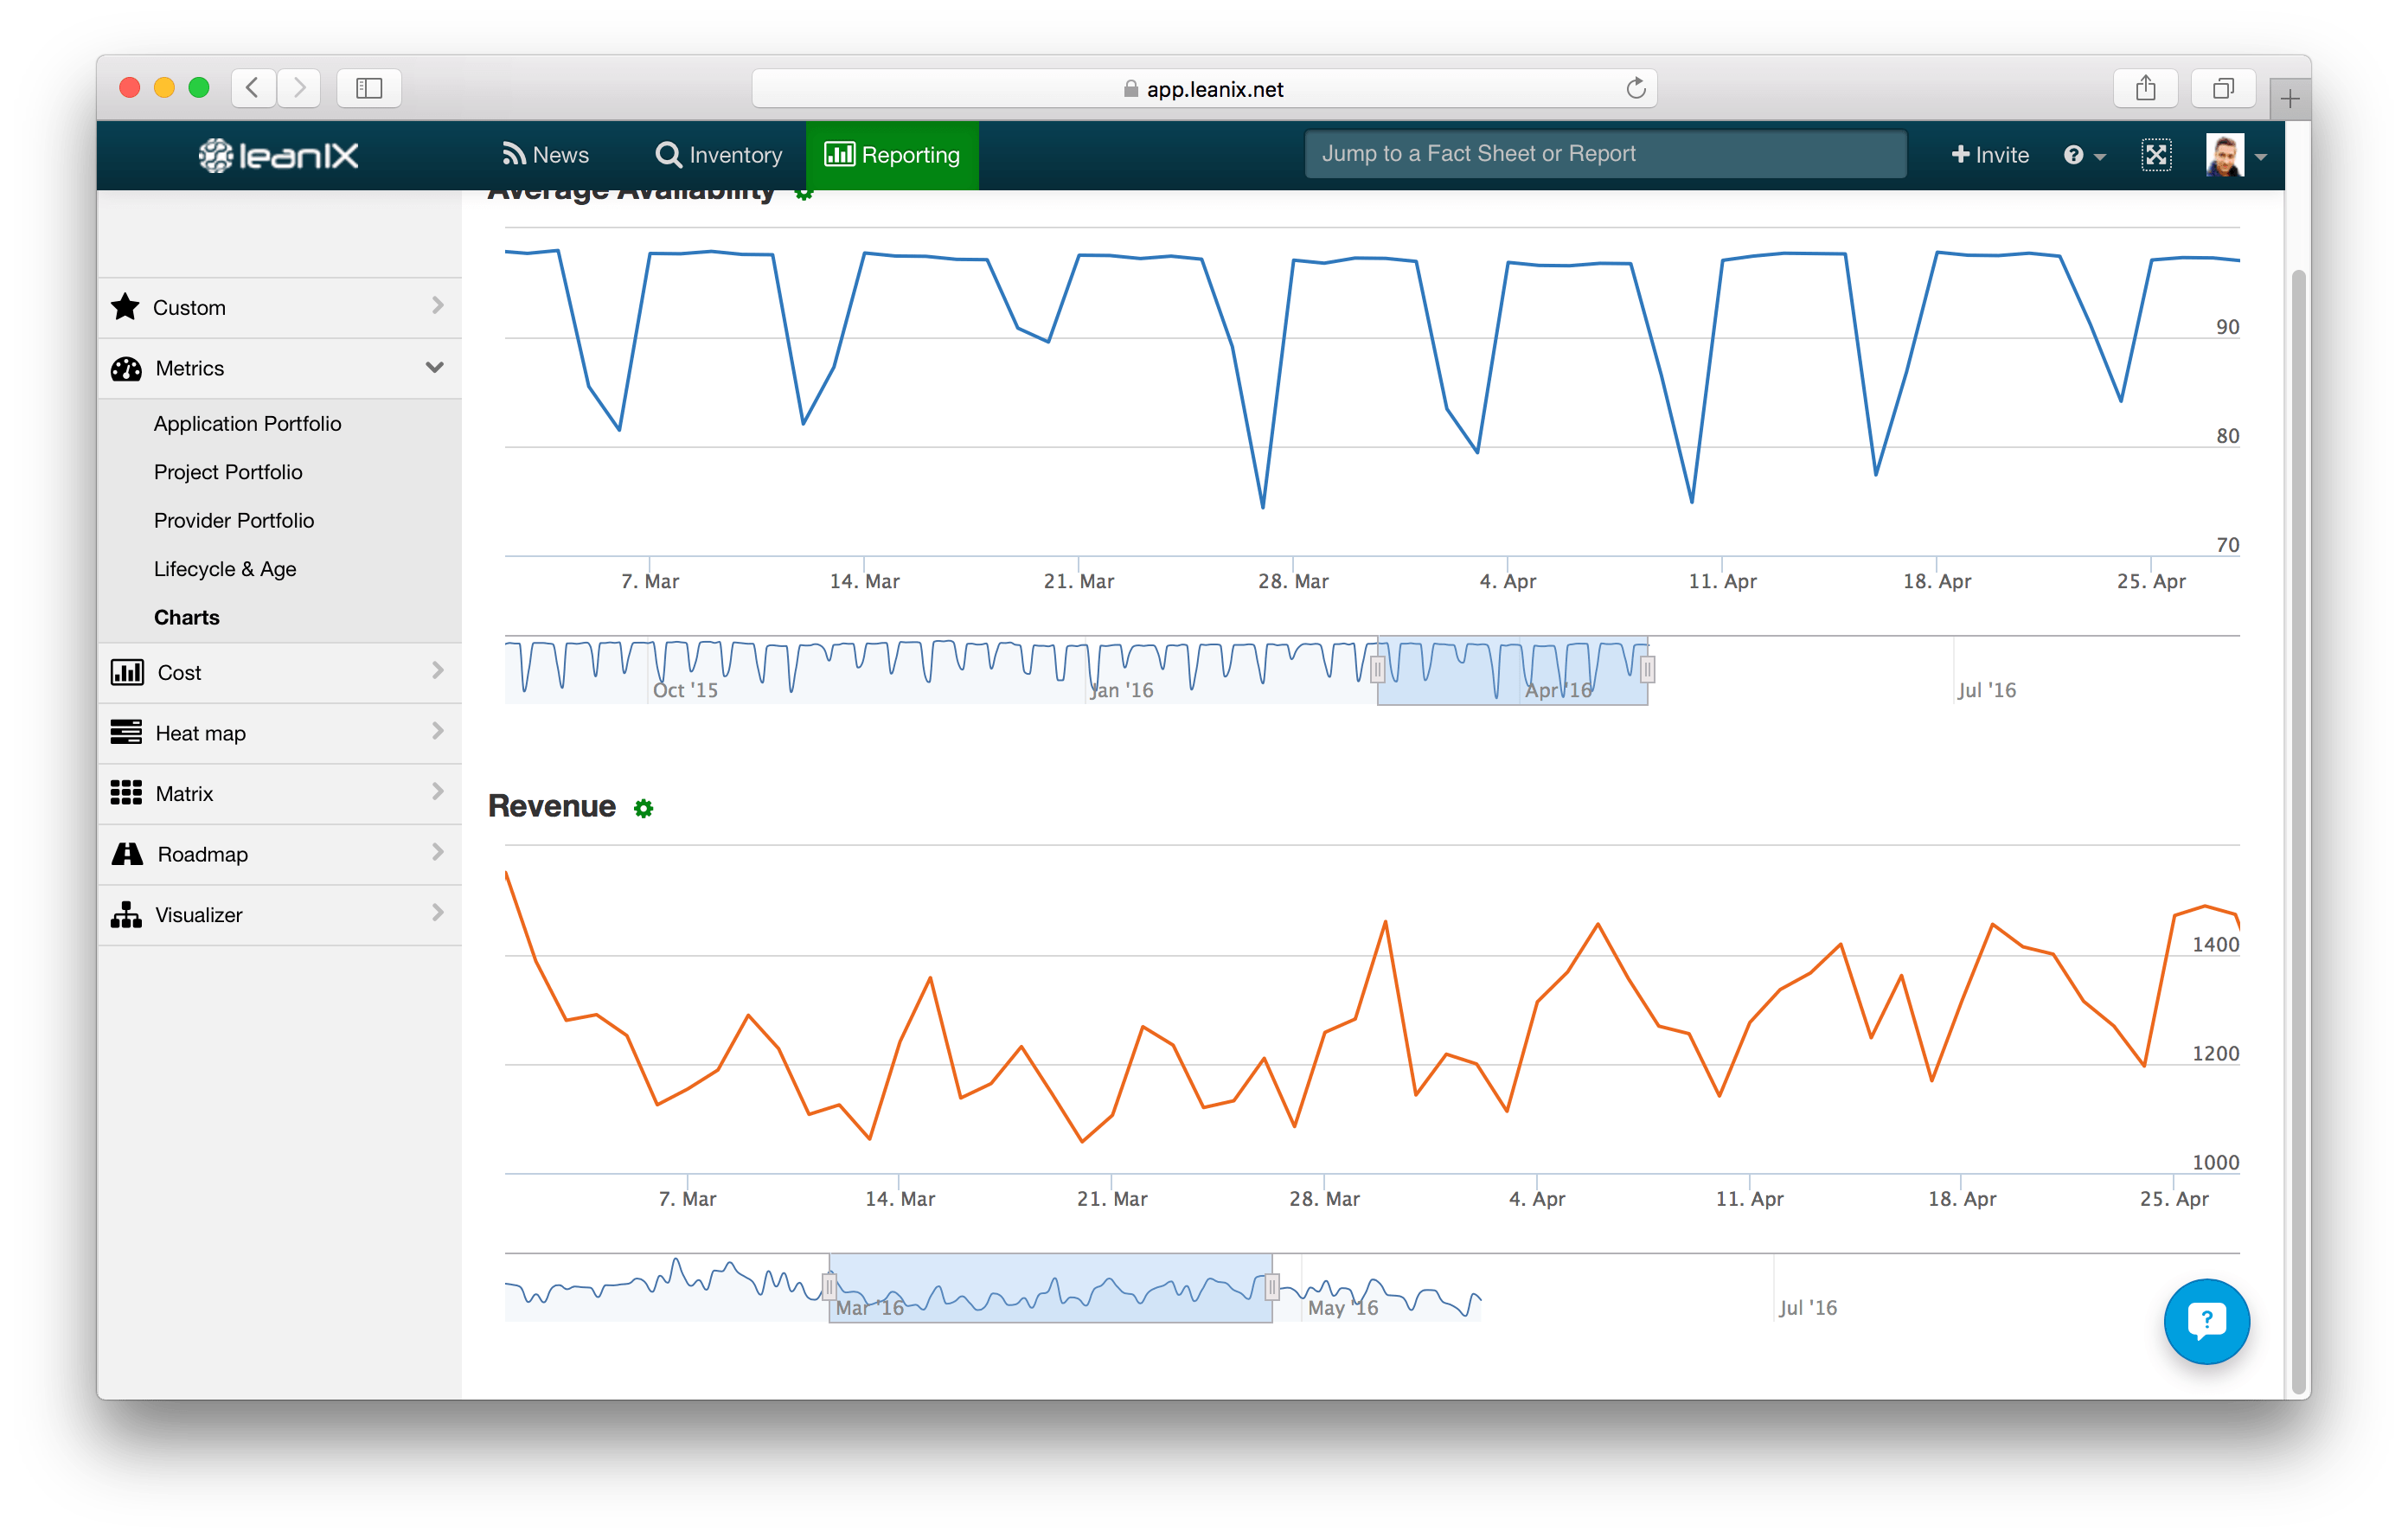 What are the most important company-wide IT metrics for decision makers on one dashboard?